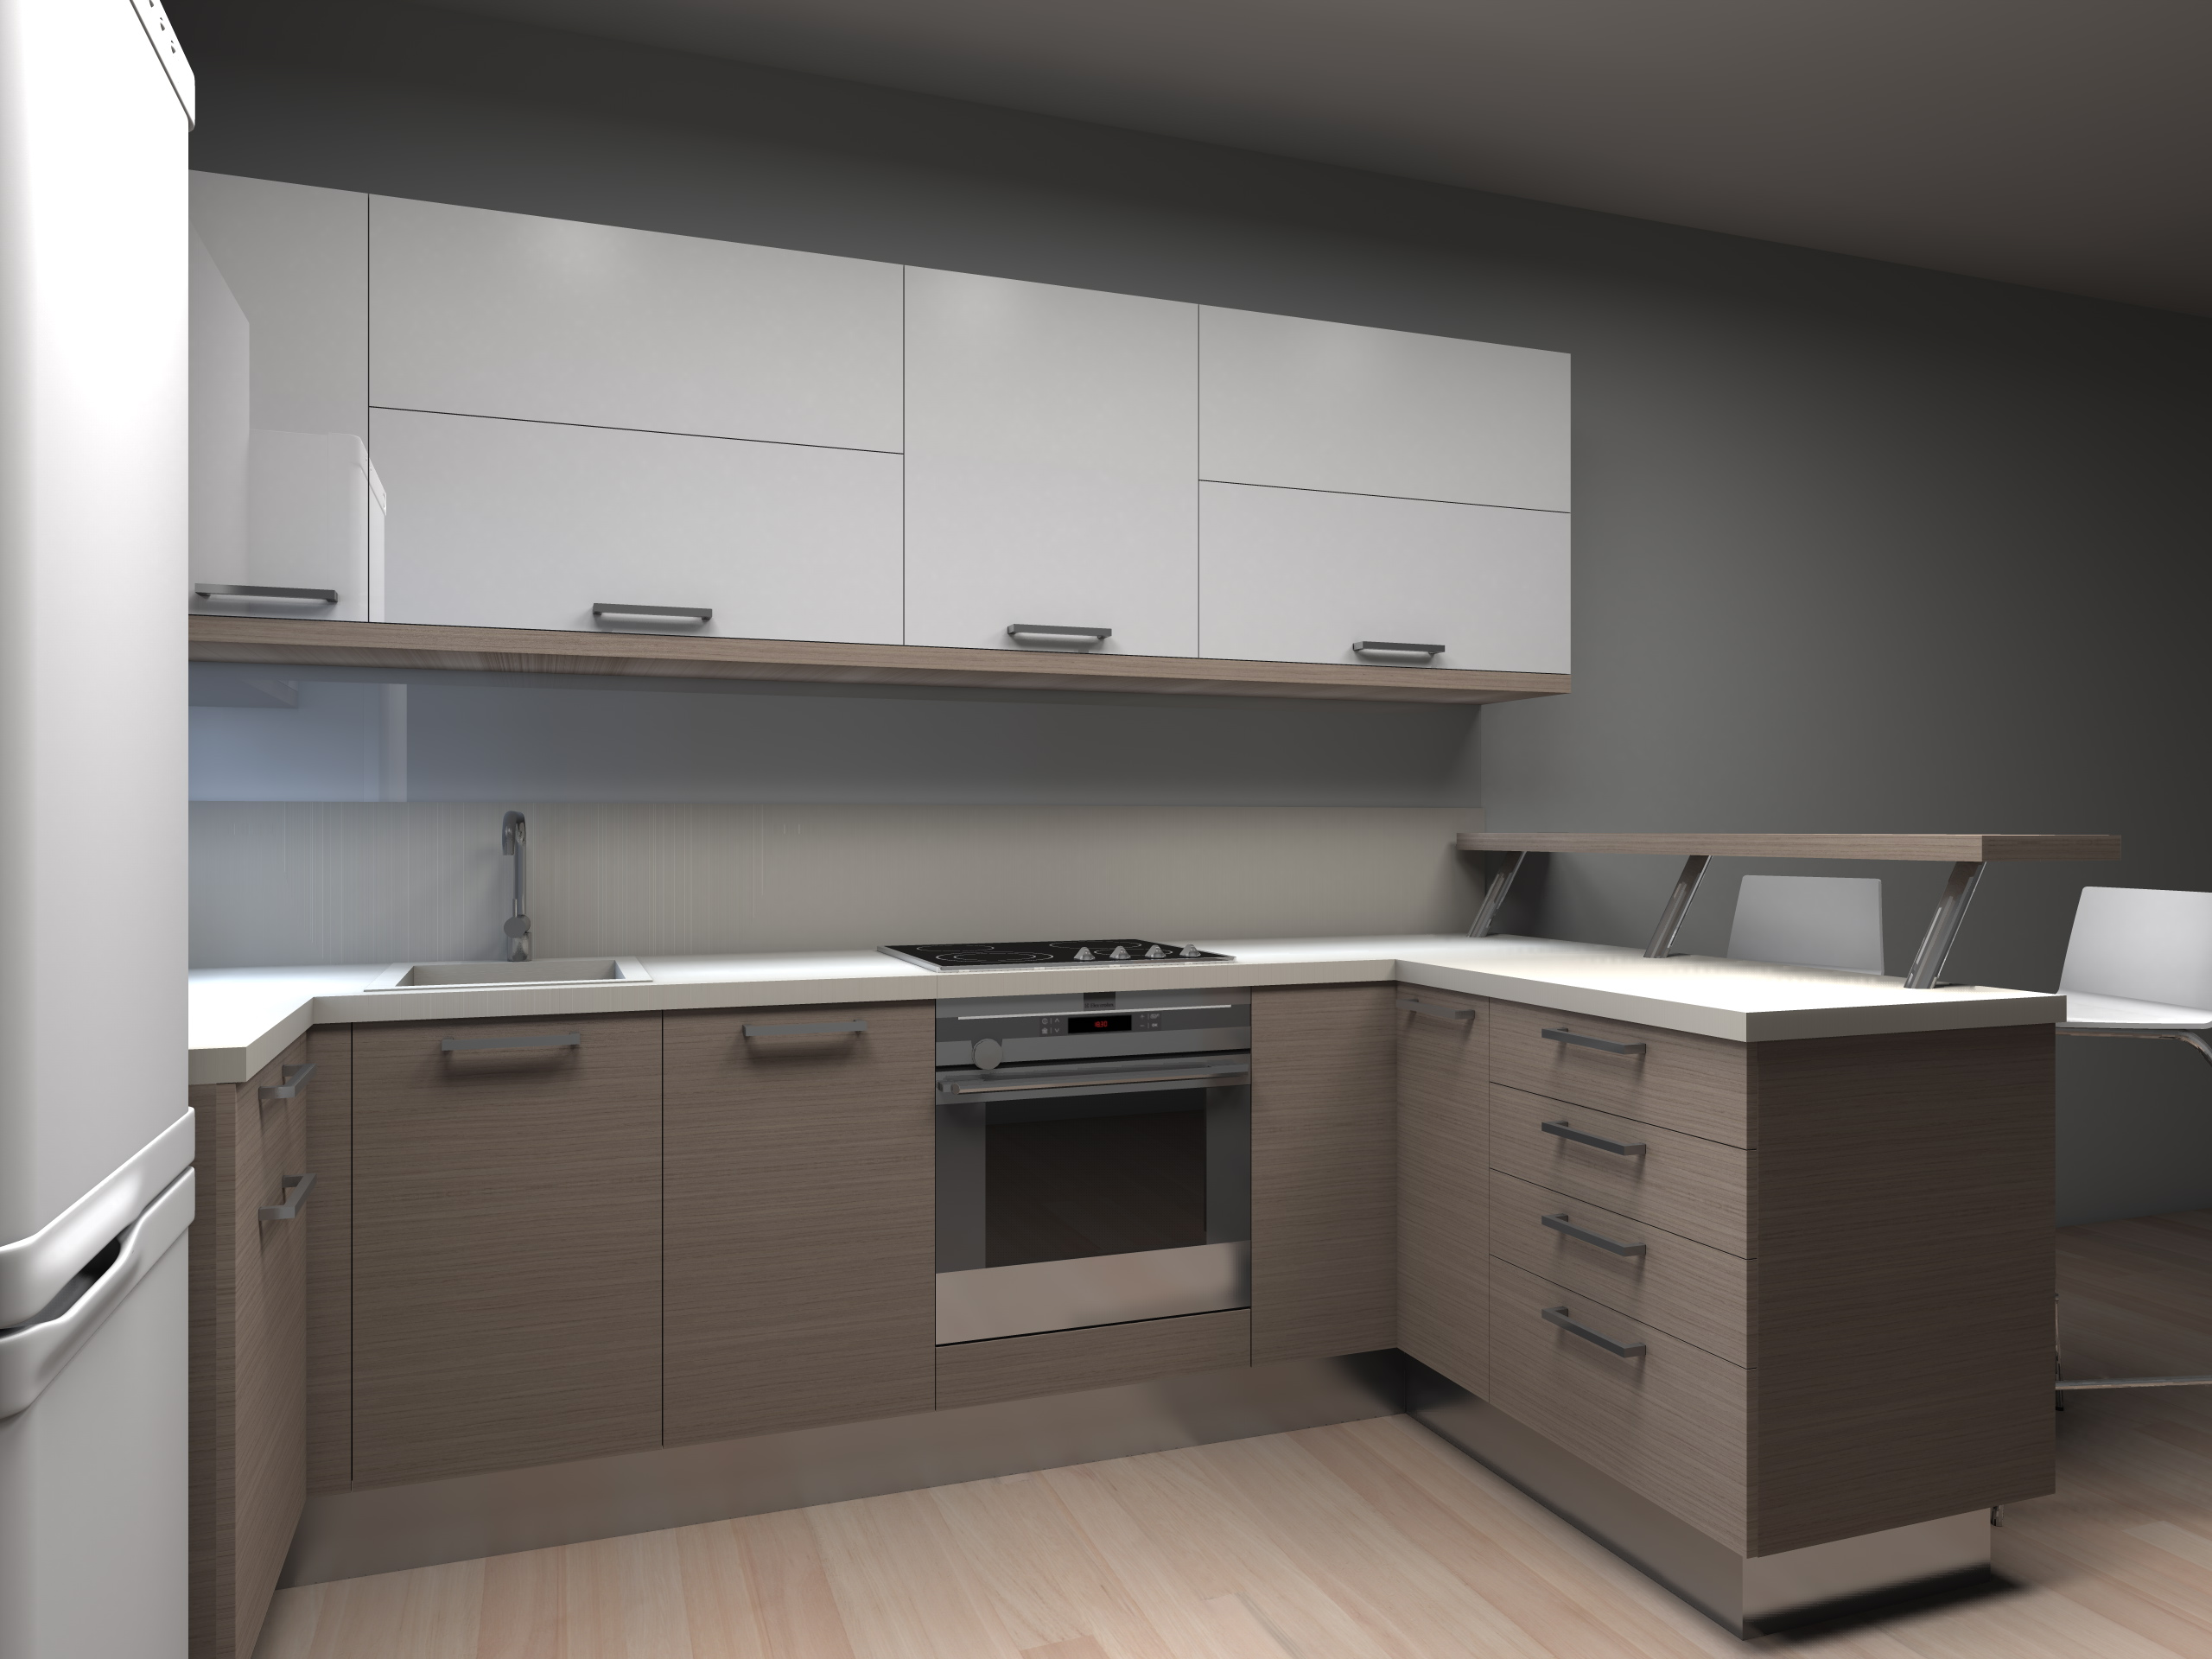 Kitchen furniture by evita gavrilova at for Kitchen design 6 x 8